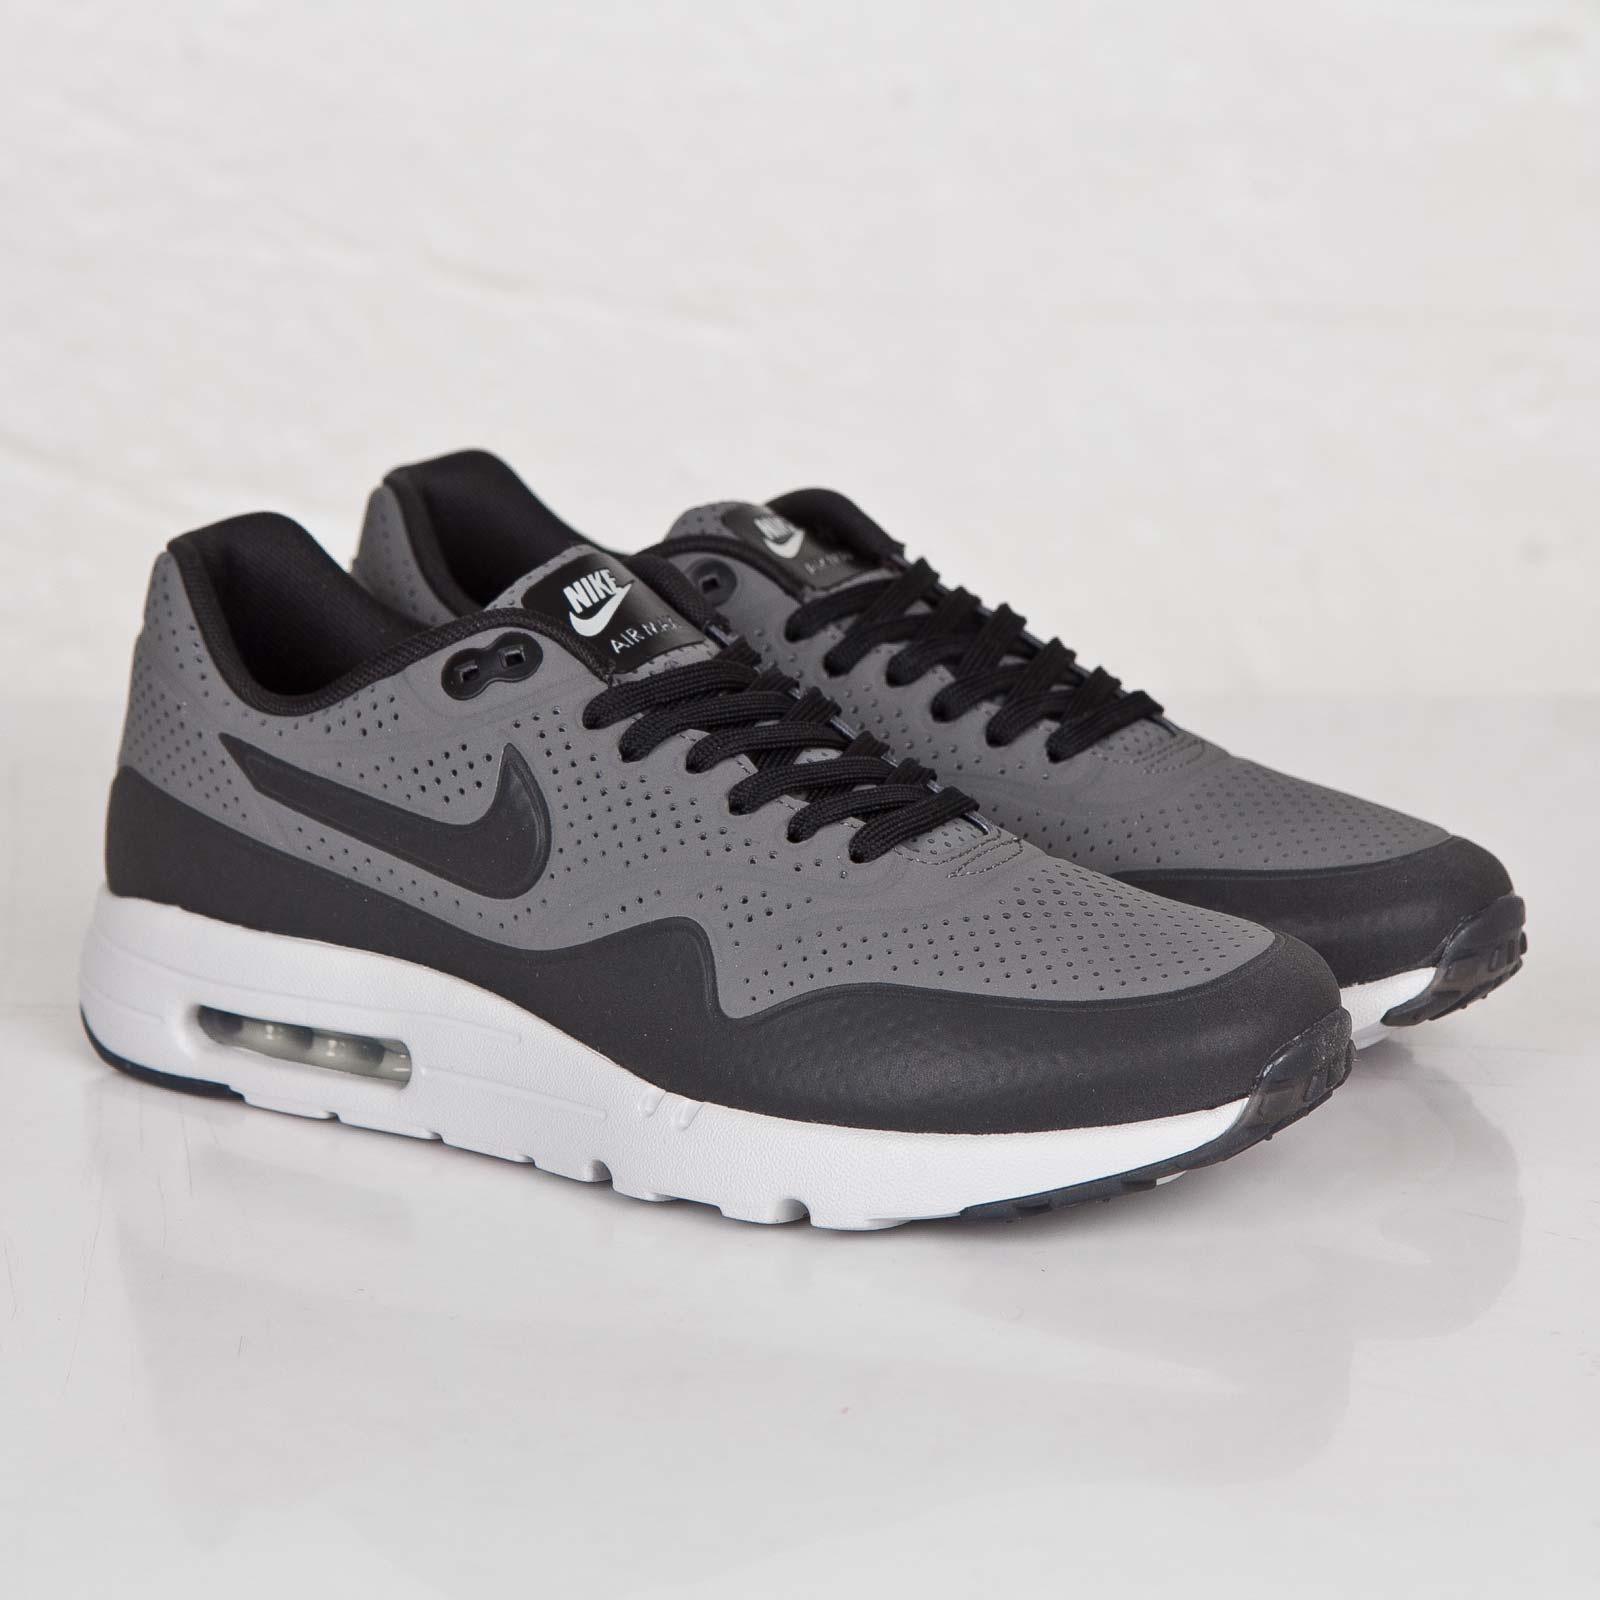 new product 35b3f a7288 Nike Air Max 1 Ultra Moire